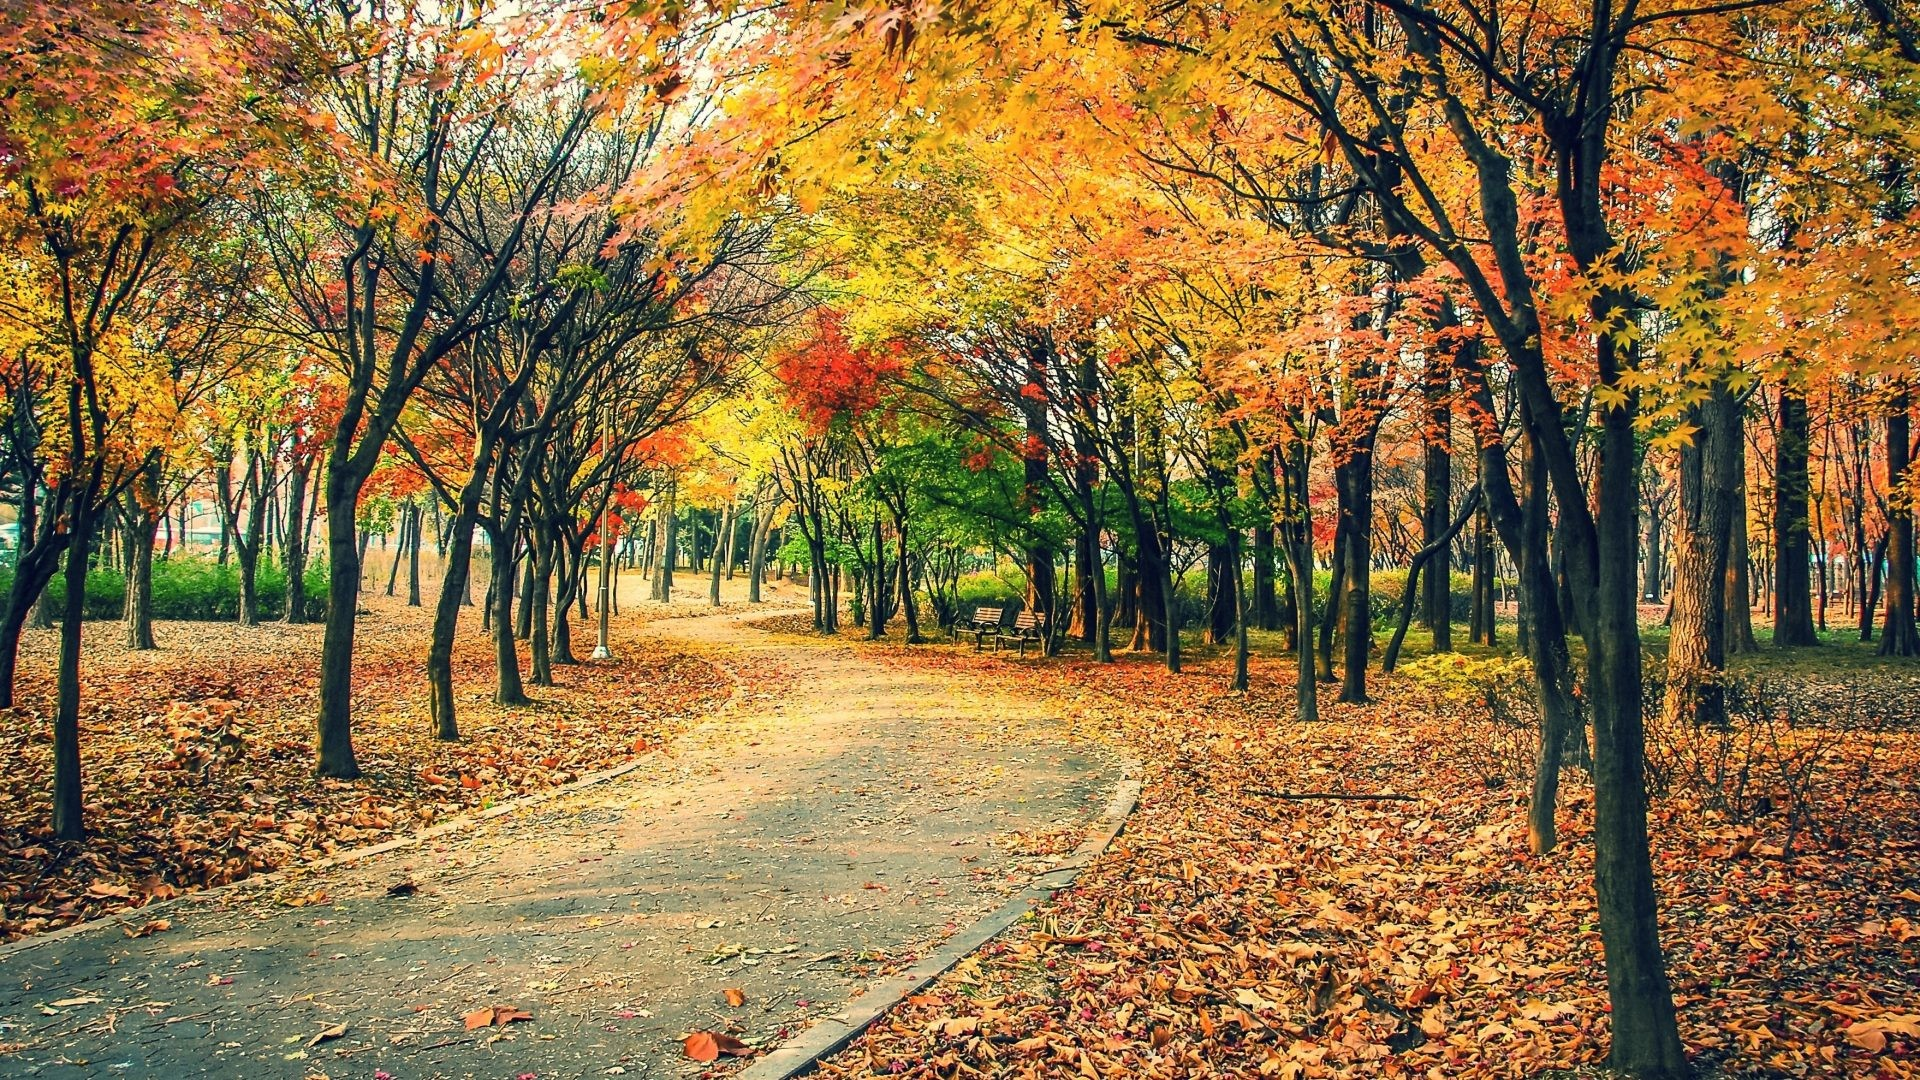 Autumn Tag – Nature Leaves Trail Tree Path Leaf Forest Landscape Fall Autumn  Road Wallpapers For